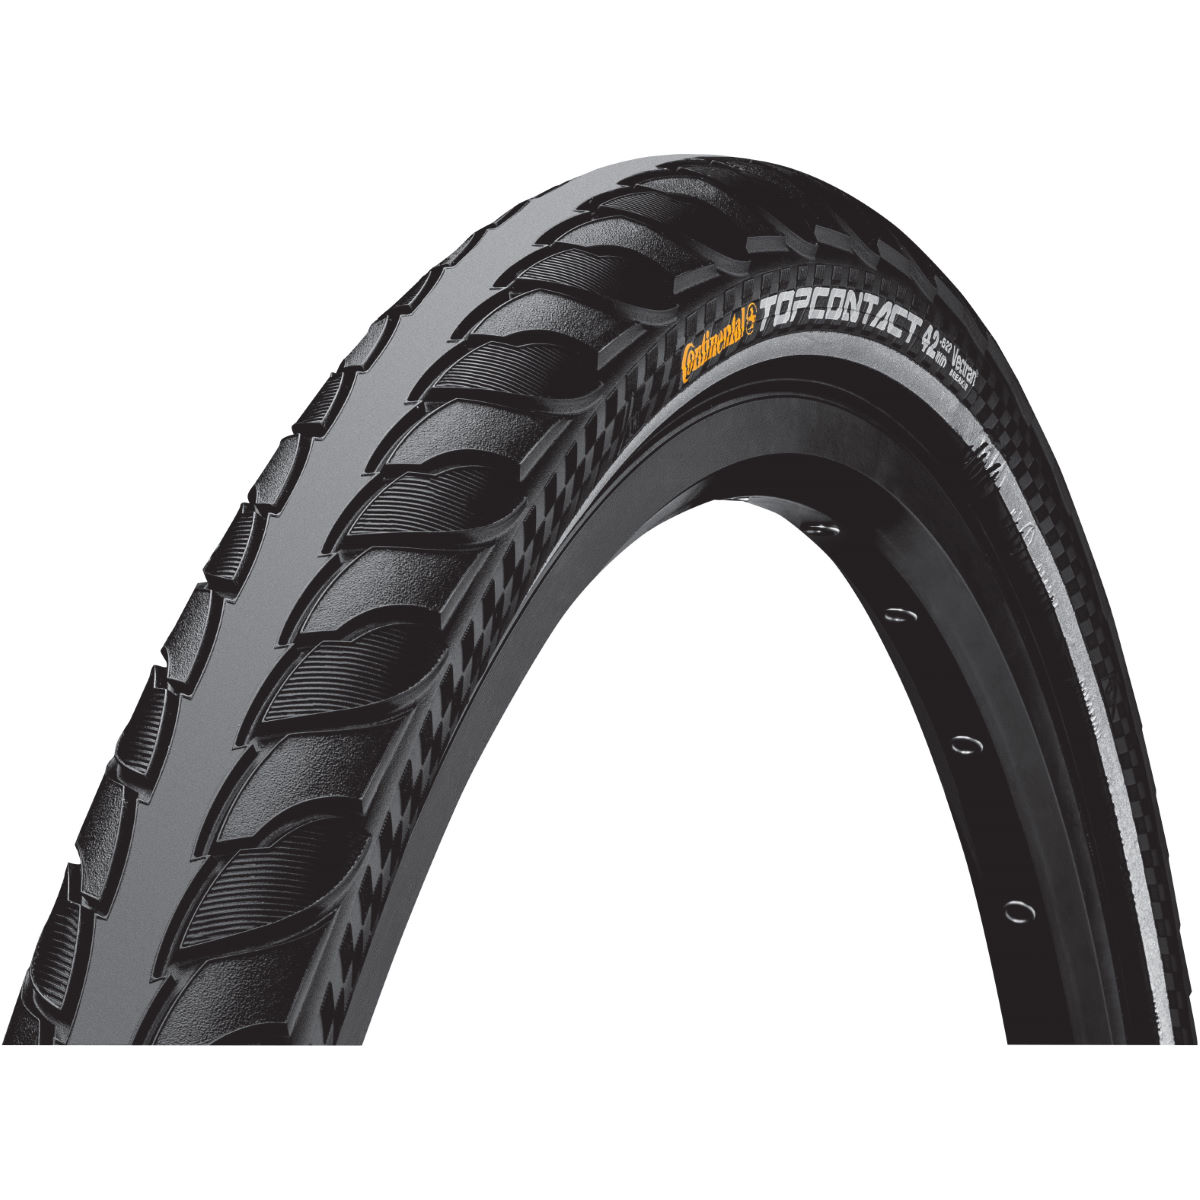 Continental Continental Top Contact II City Road Tyre   Tyres